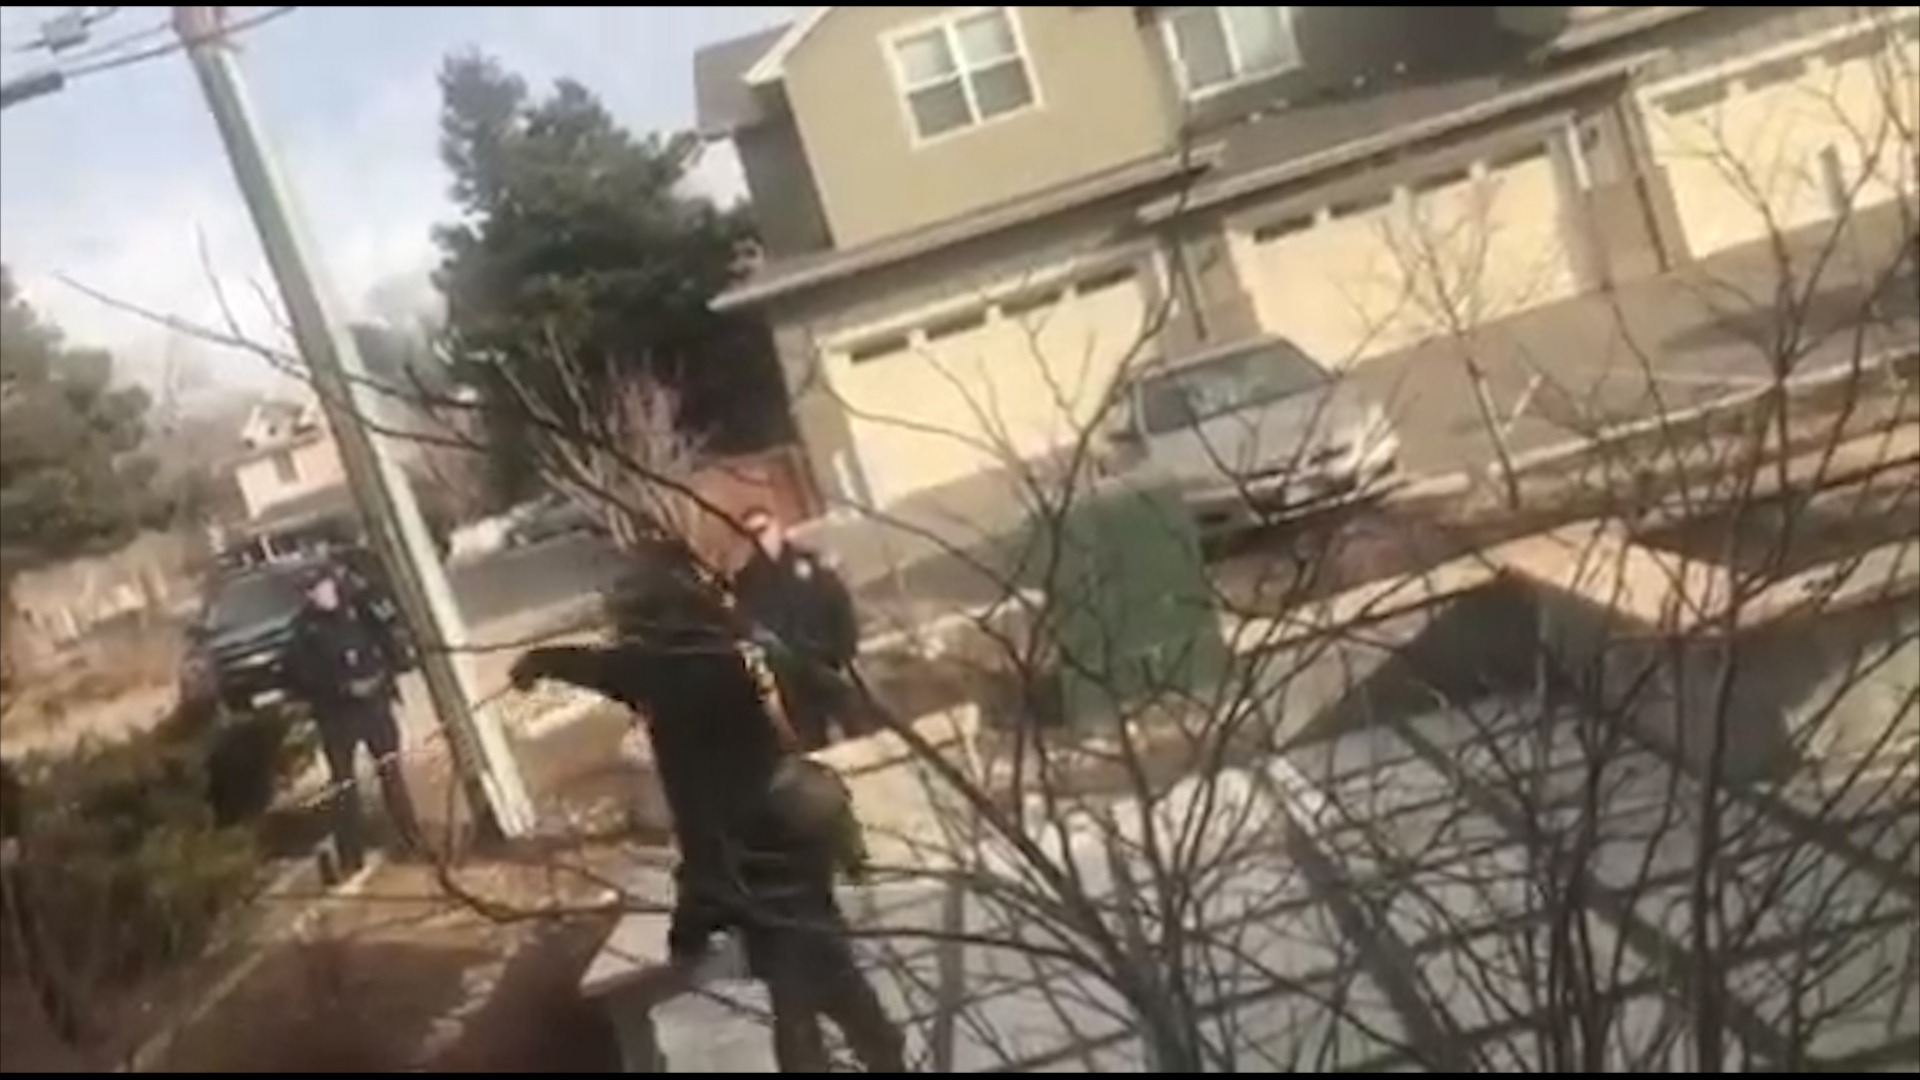 U.S. police detain black man picking up rubbish outside home